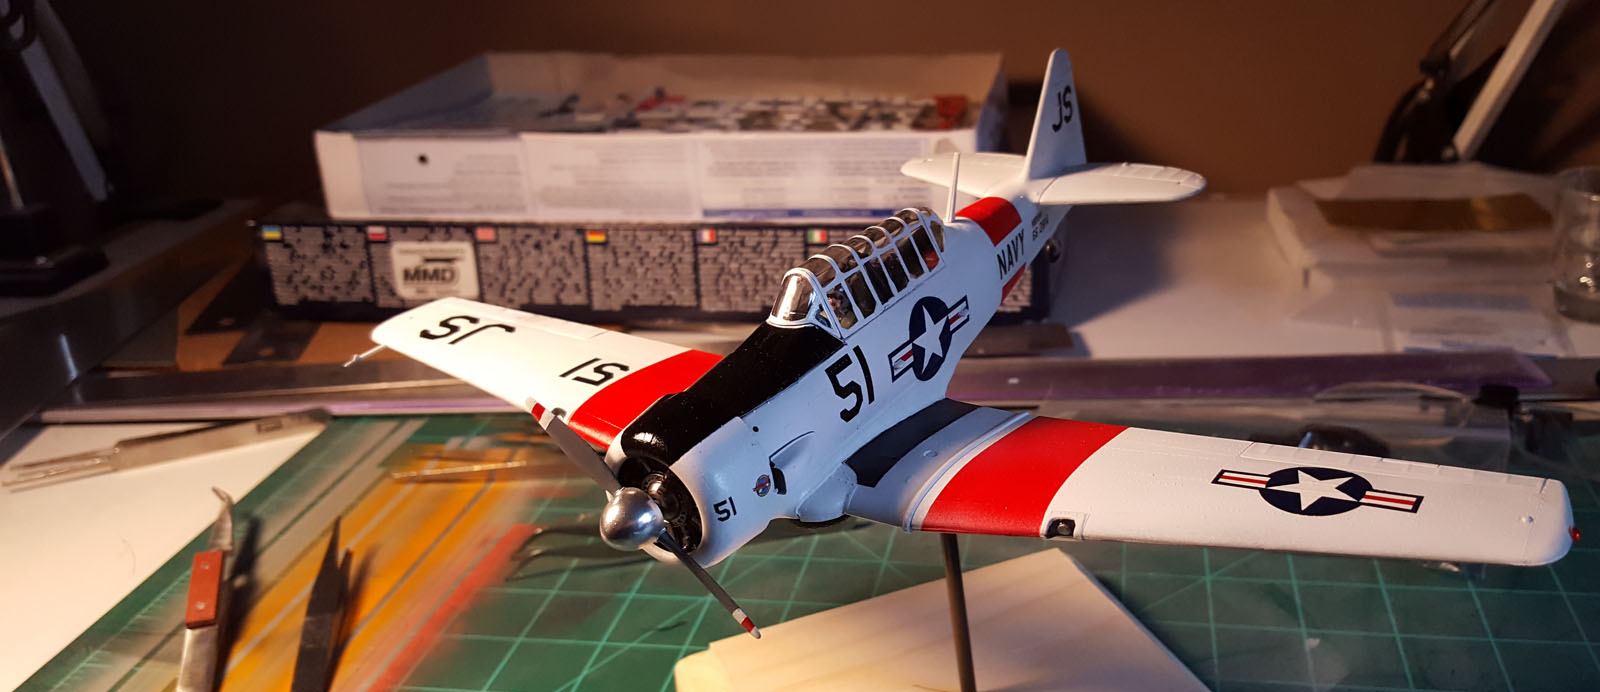 1 48th Scale Model Plane Replica Decals Bedlam Creations